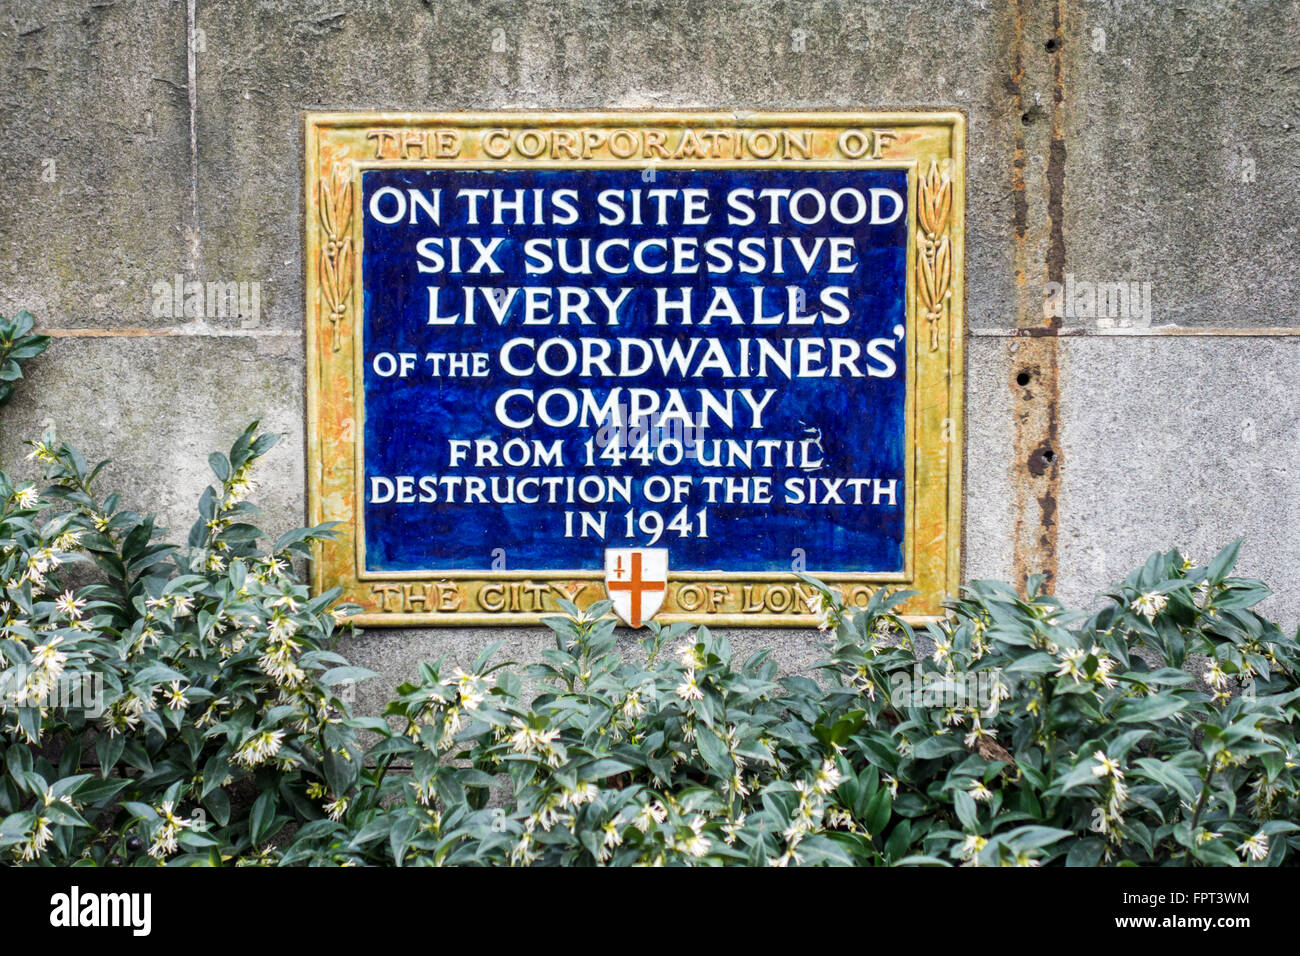 Plaque showing the site of siz Livery Halls of the Cordwainers' Company 1440 - 1941, City of London, UK - Stock Image